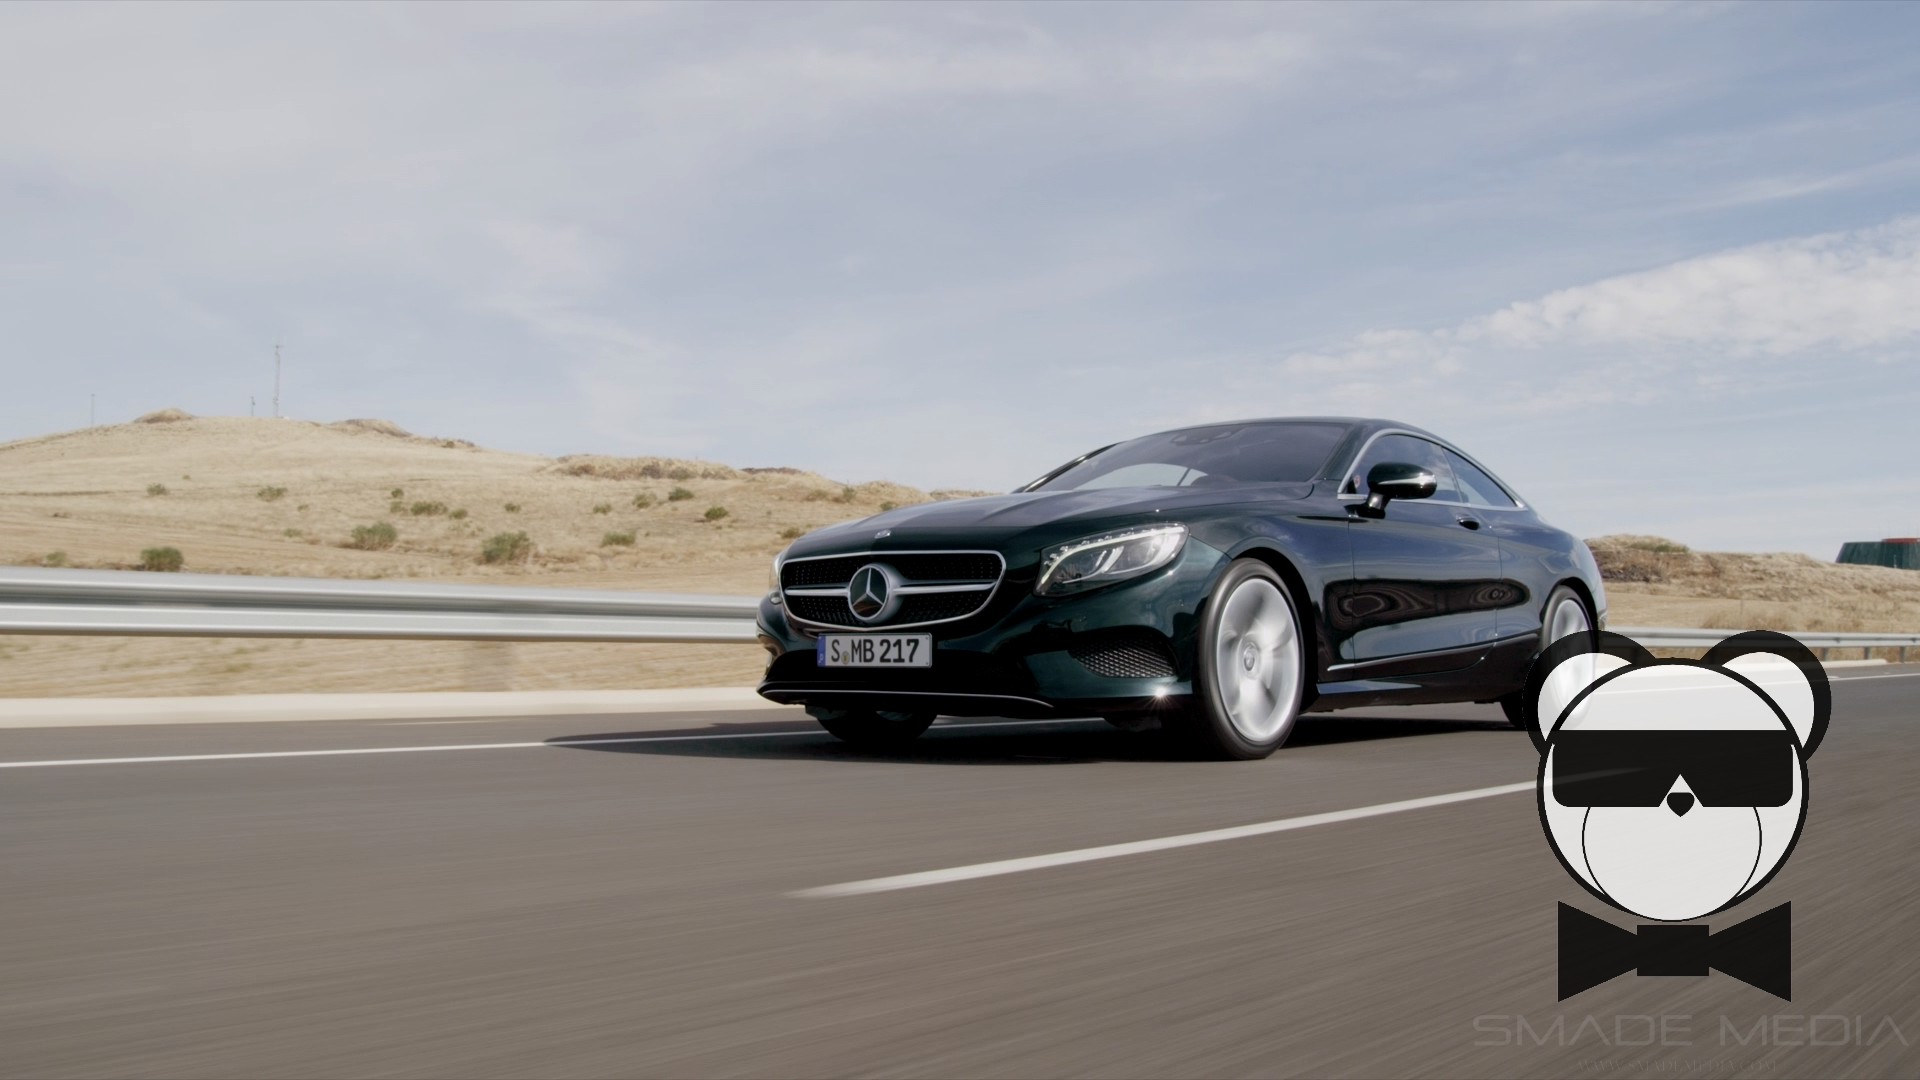 Mercedes-Benz S-Class Coupe - (206) SMADEMEDIA.COM inDESIGN Collection